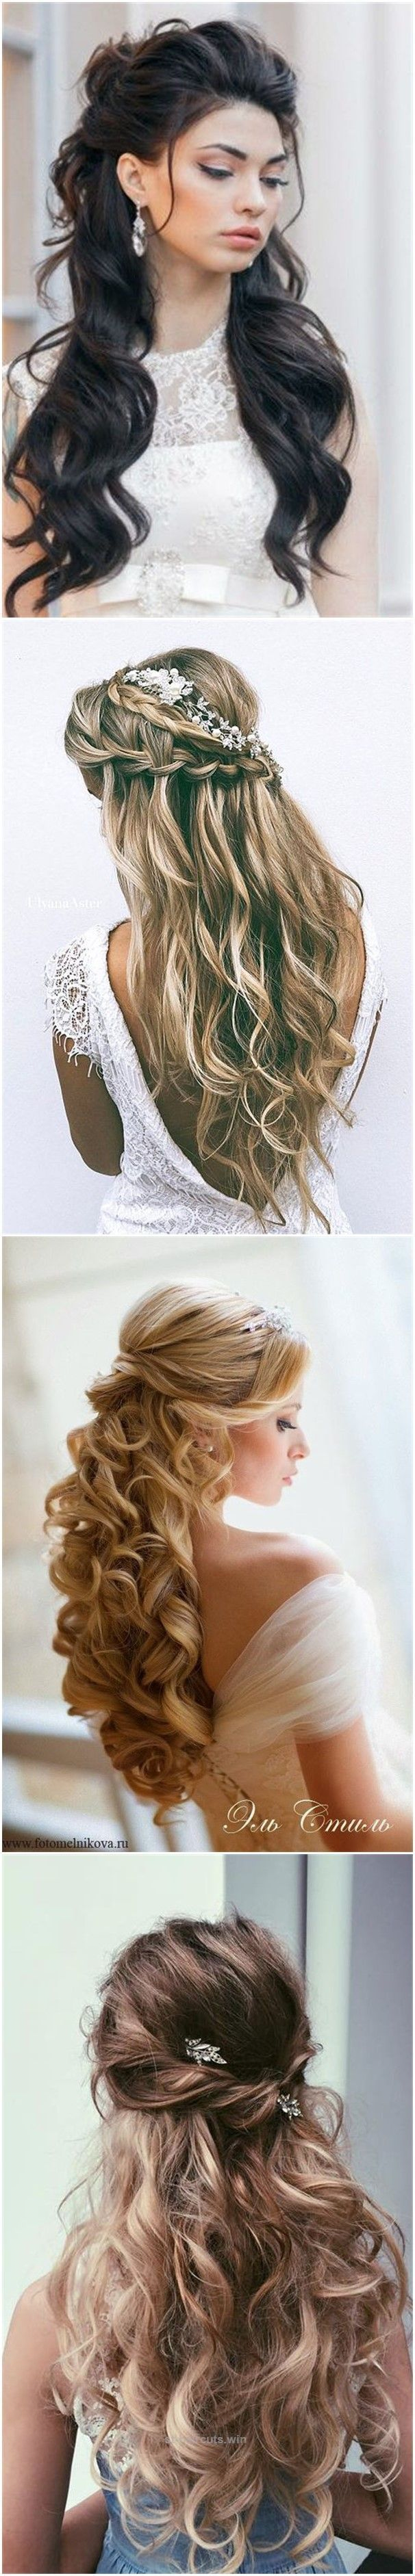 Marvelous Wedding Hairstyles » 18 Creative and Unique Wedding Hairstyles for Long Hair » ❤️ See more: www.weddinginclud… The post Wedding Hairstyles » 18 Creative and Unique ..